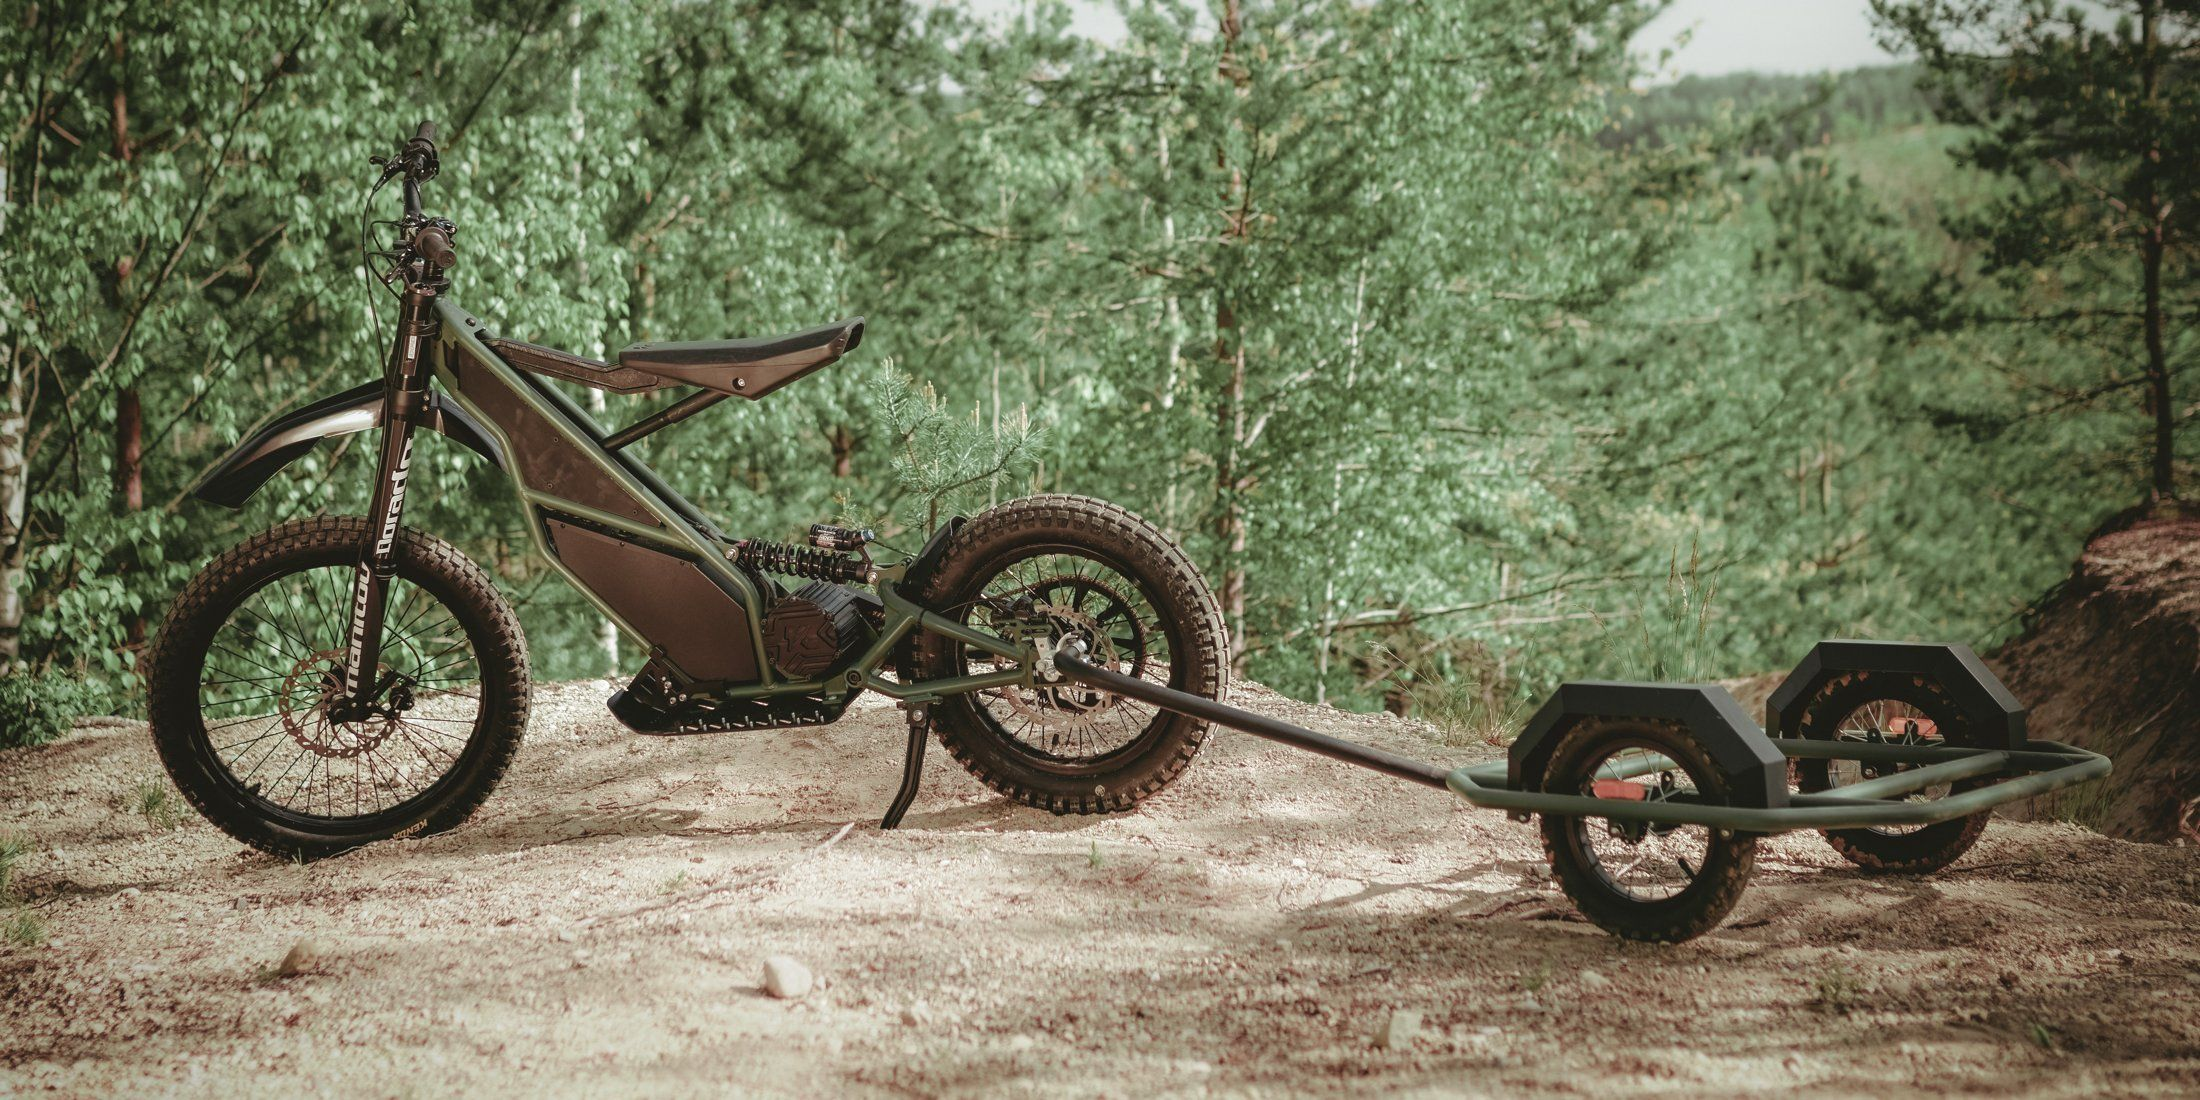 Kuberg Ranger Announced As 50 Mph Electric Dirtbike Scooter Hybrid In 2020 Electric Motorbike Electric Dirt Bike Electric Scooter